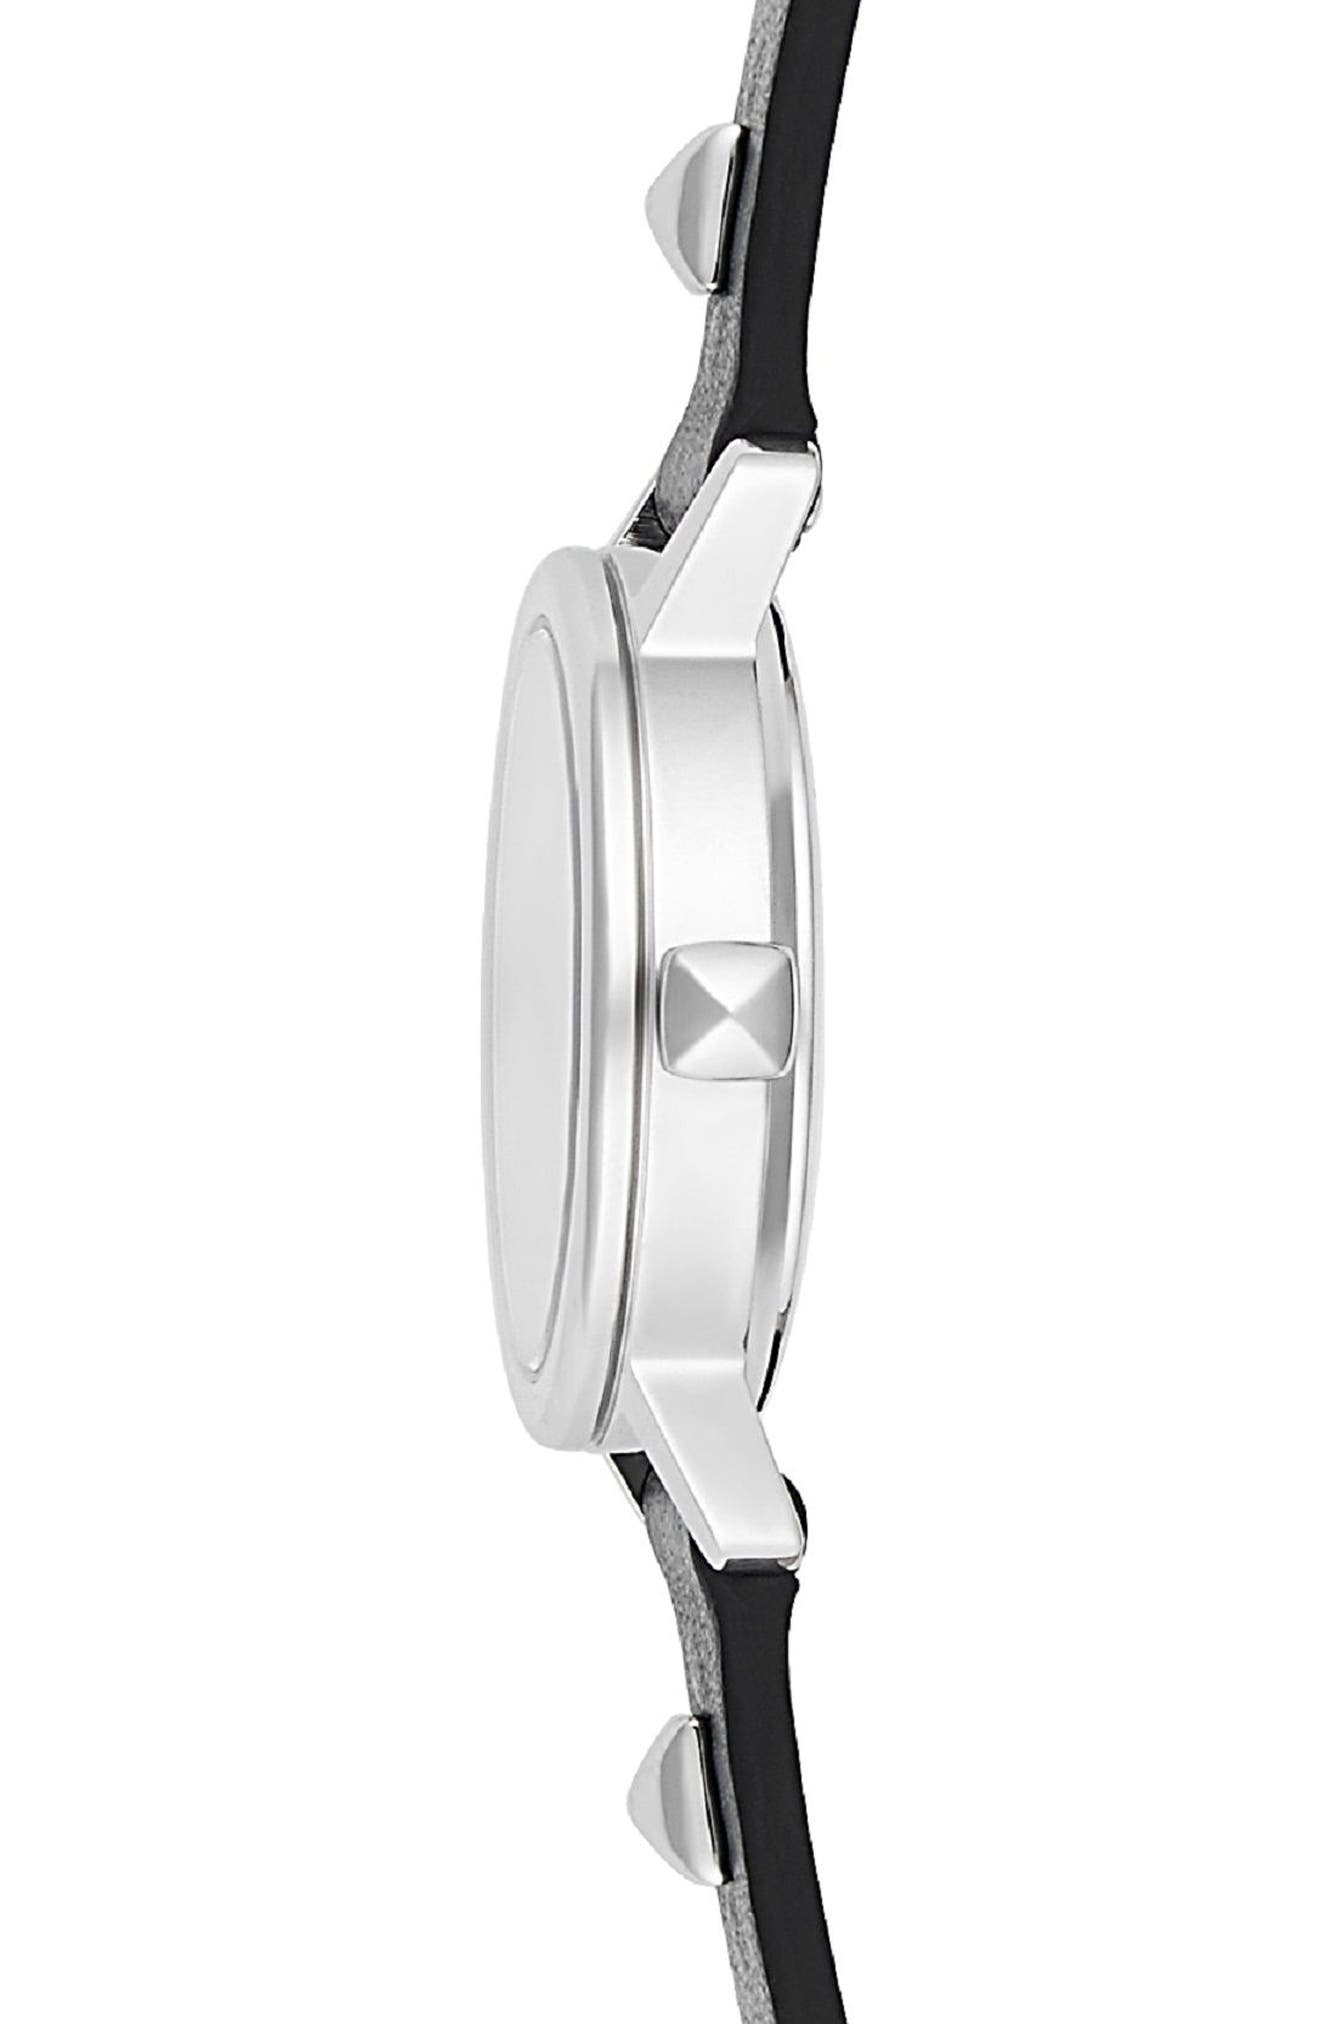 BFFL Chain and Leather Strap Watch, 25mm,                             Alternate thumbnail 3, color,                             BLACK/ SILVER